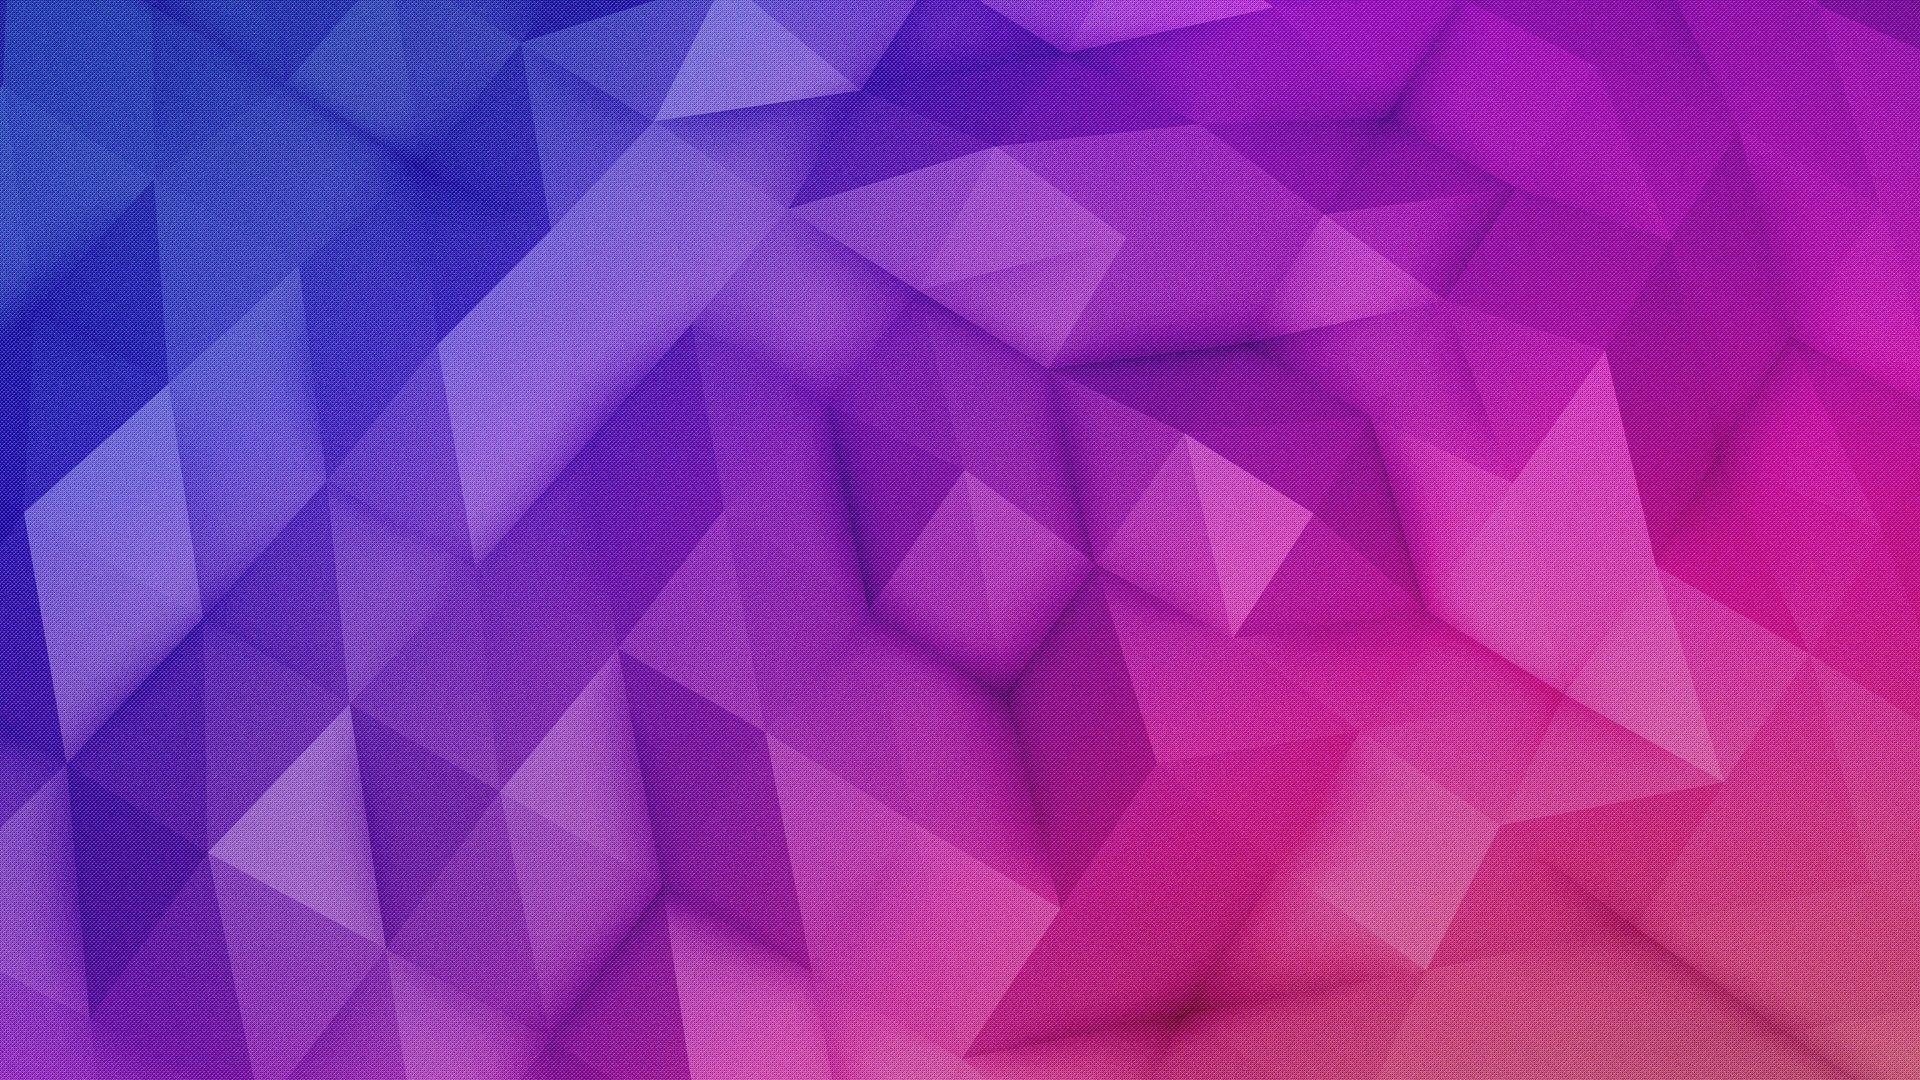 Res: 1920x1080, Geometry12 - Blue, purple and fuchsia Android wallpaper from  http://www.androidguys.com/